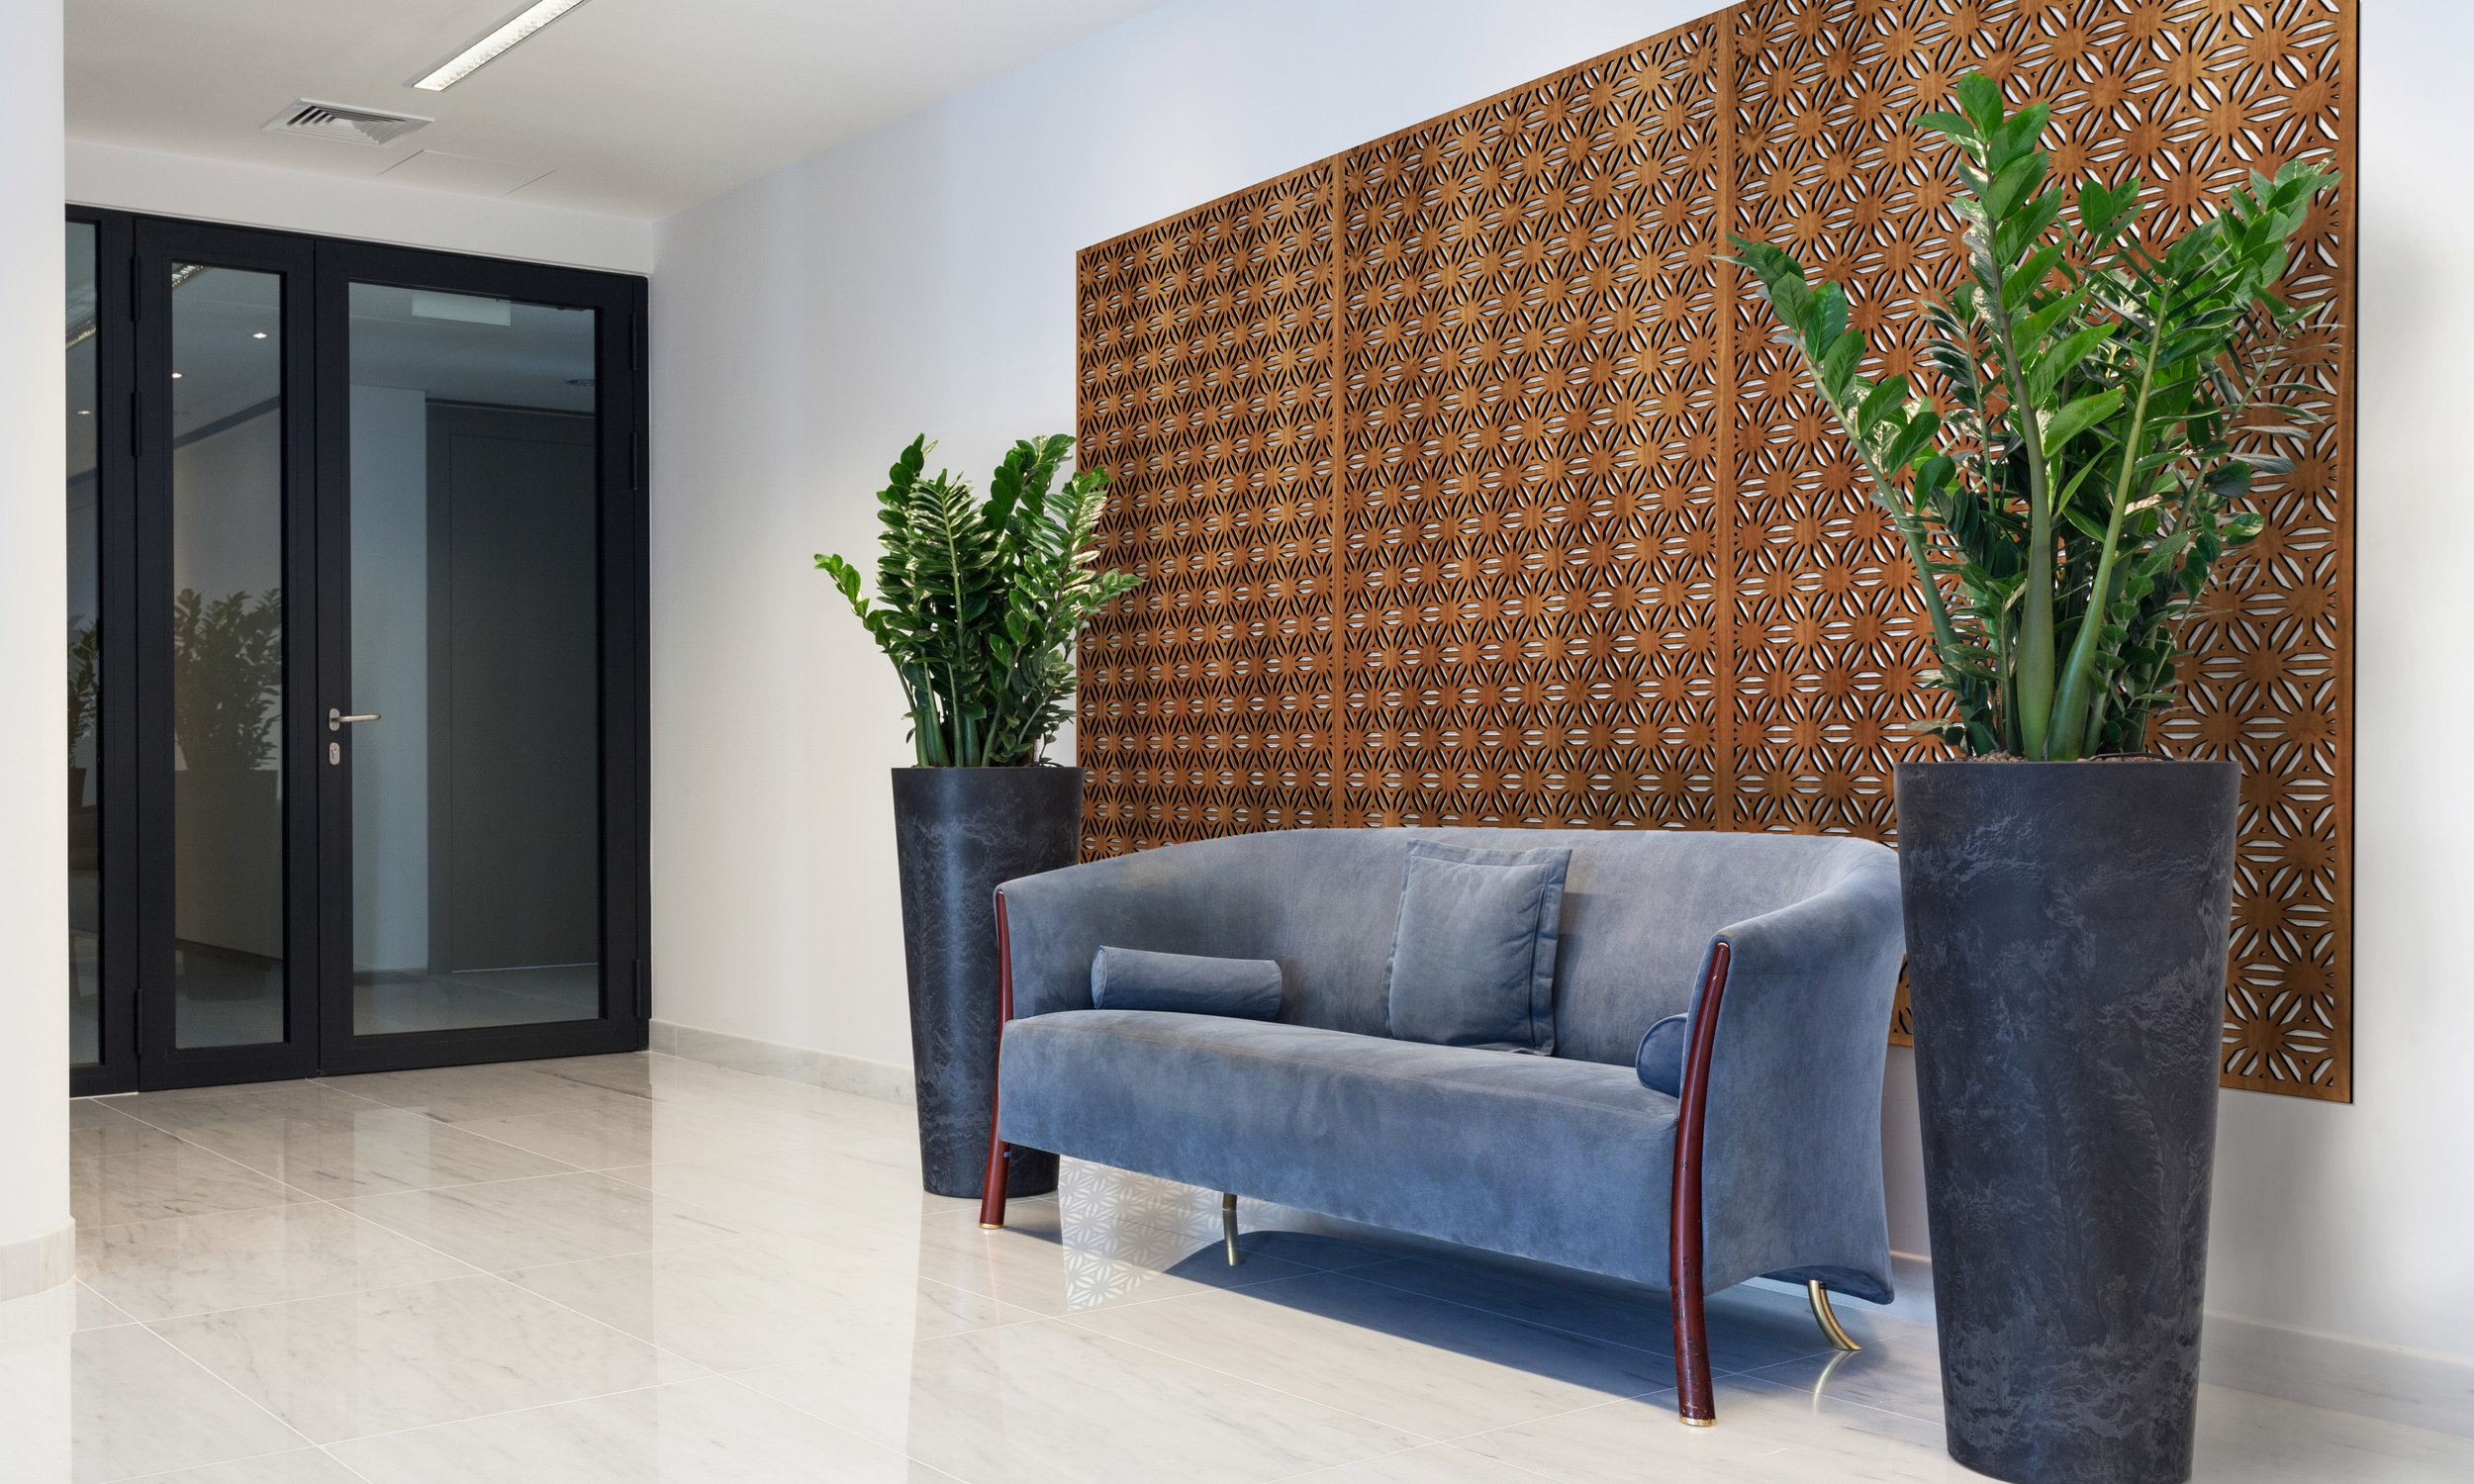 Installation Rendering A   Reverse Flower Thick decorative office wall panel - shown in Cherry